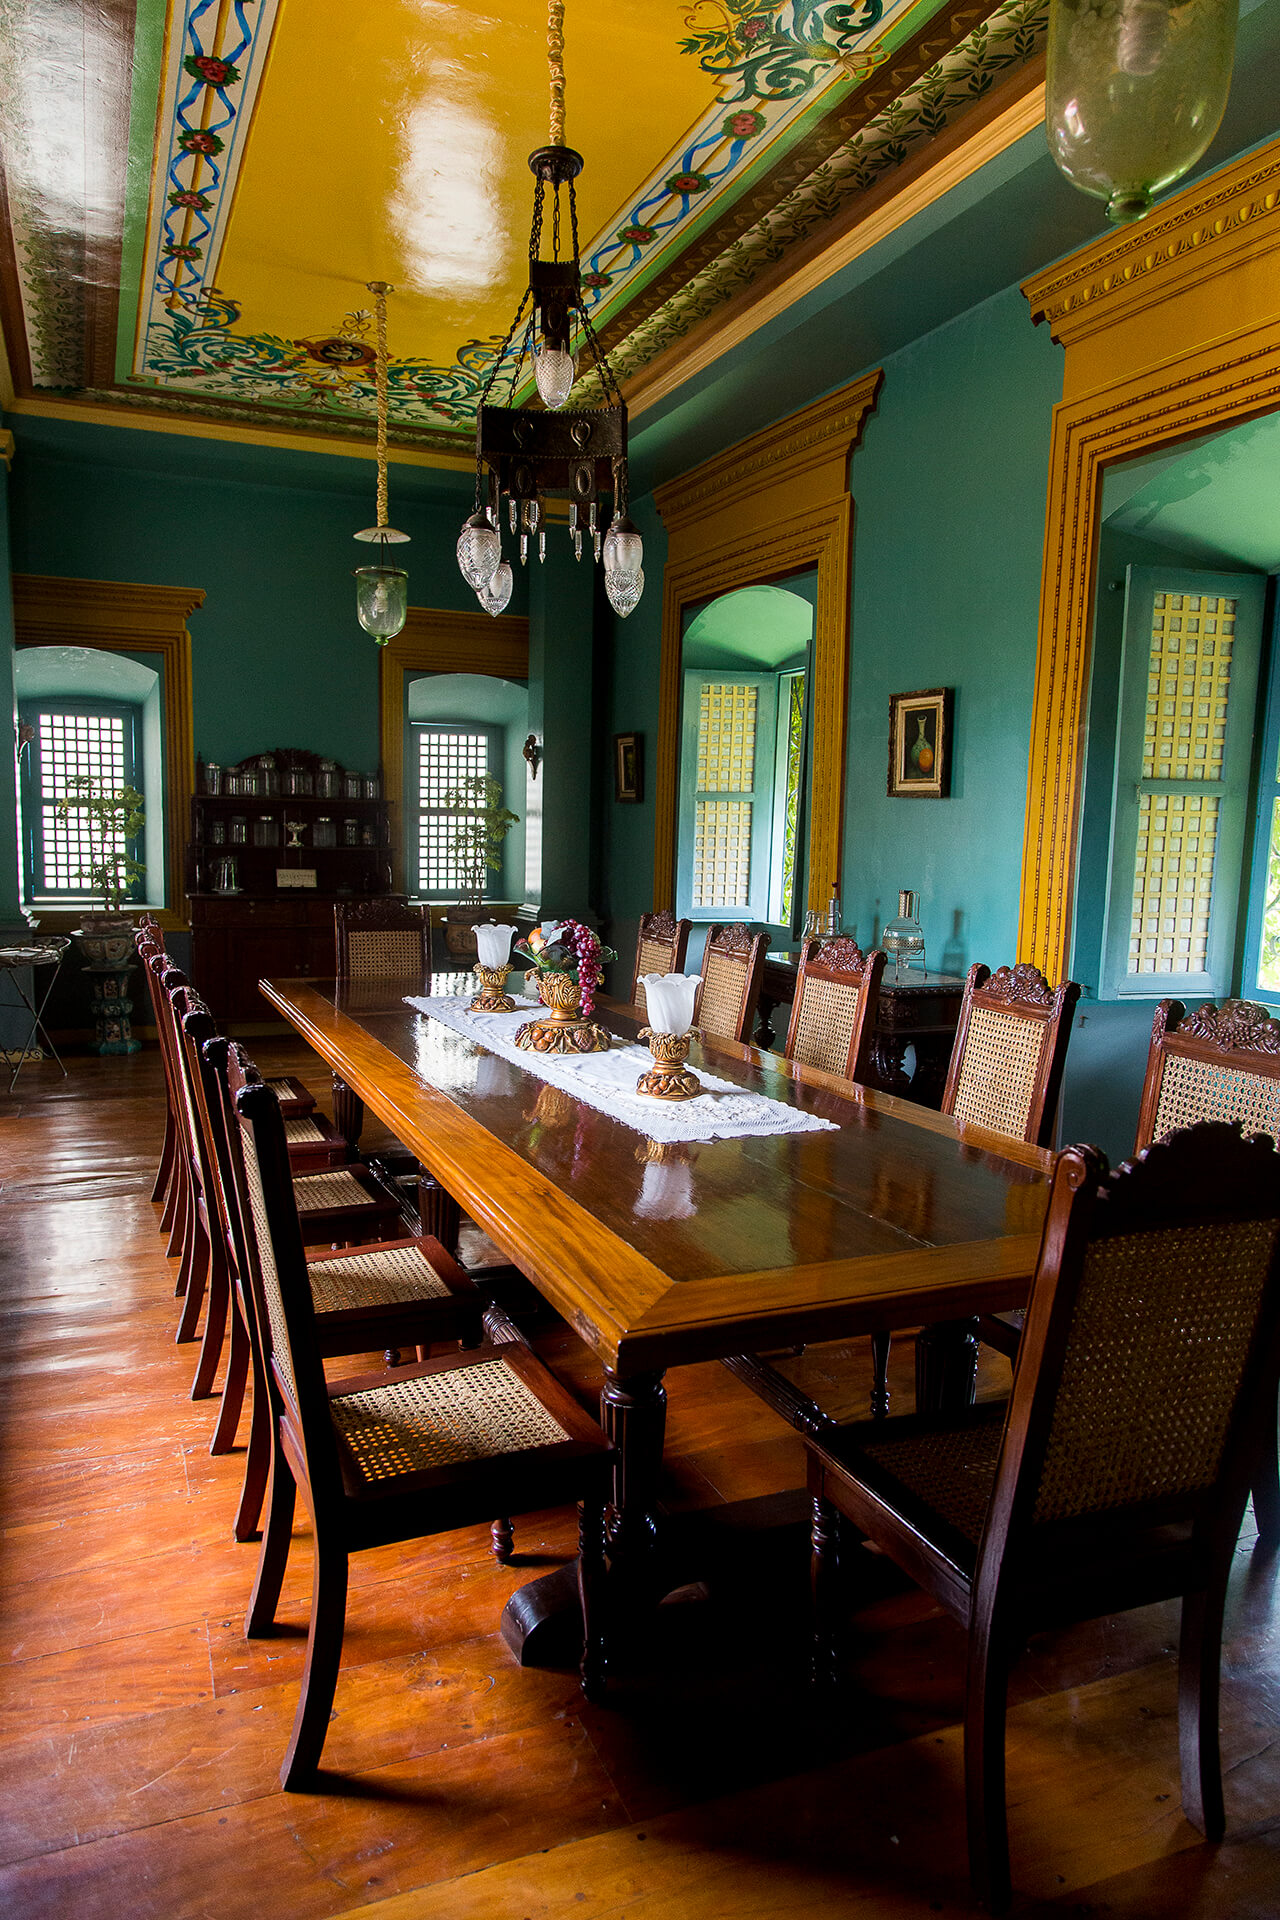 Dining room of an ancestral home in Taal